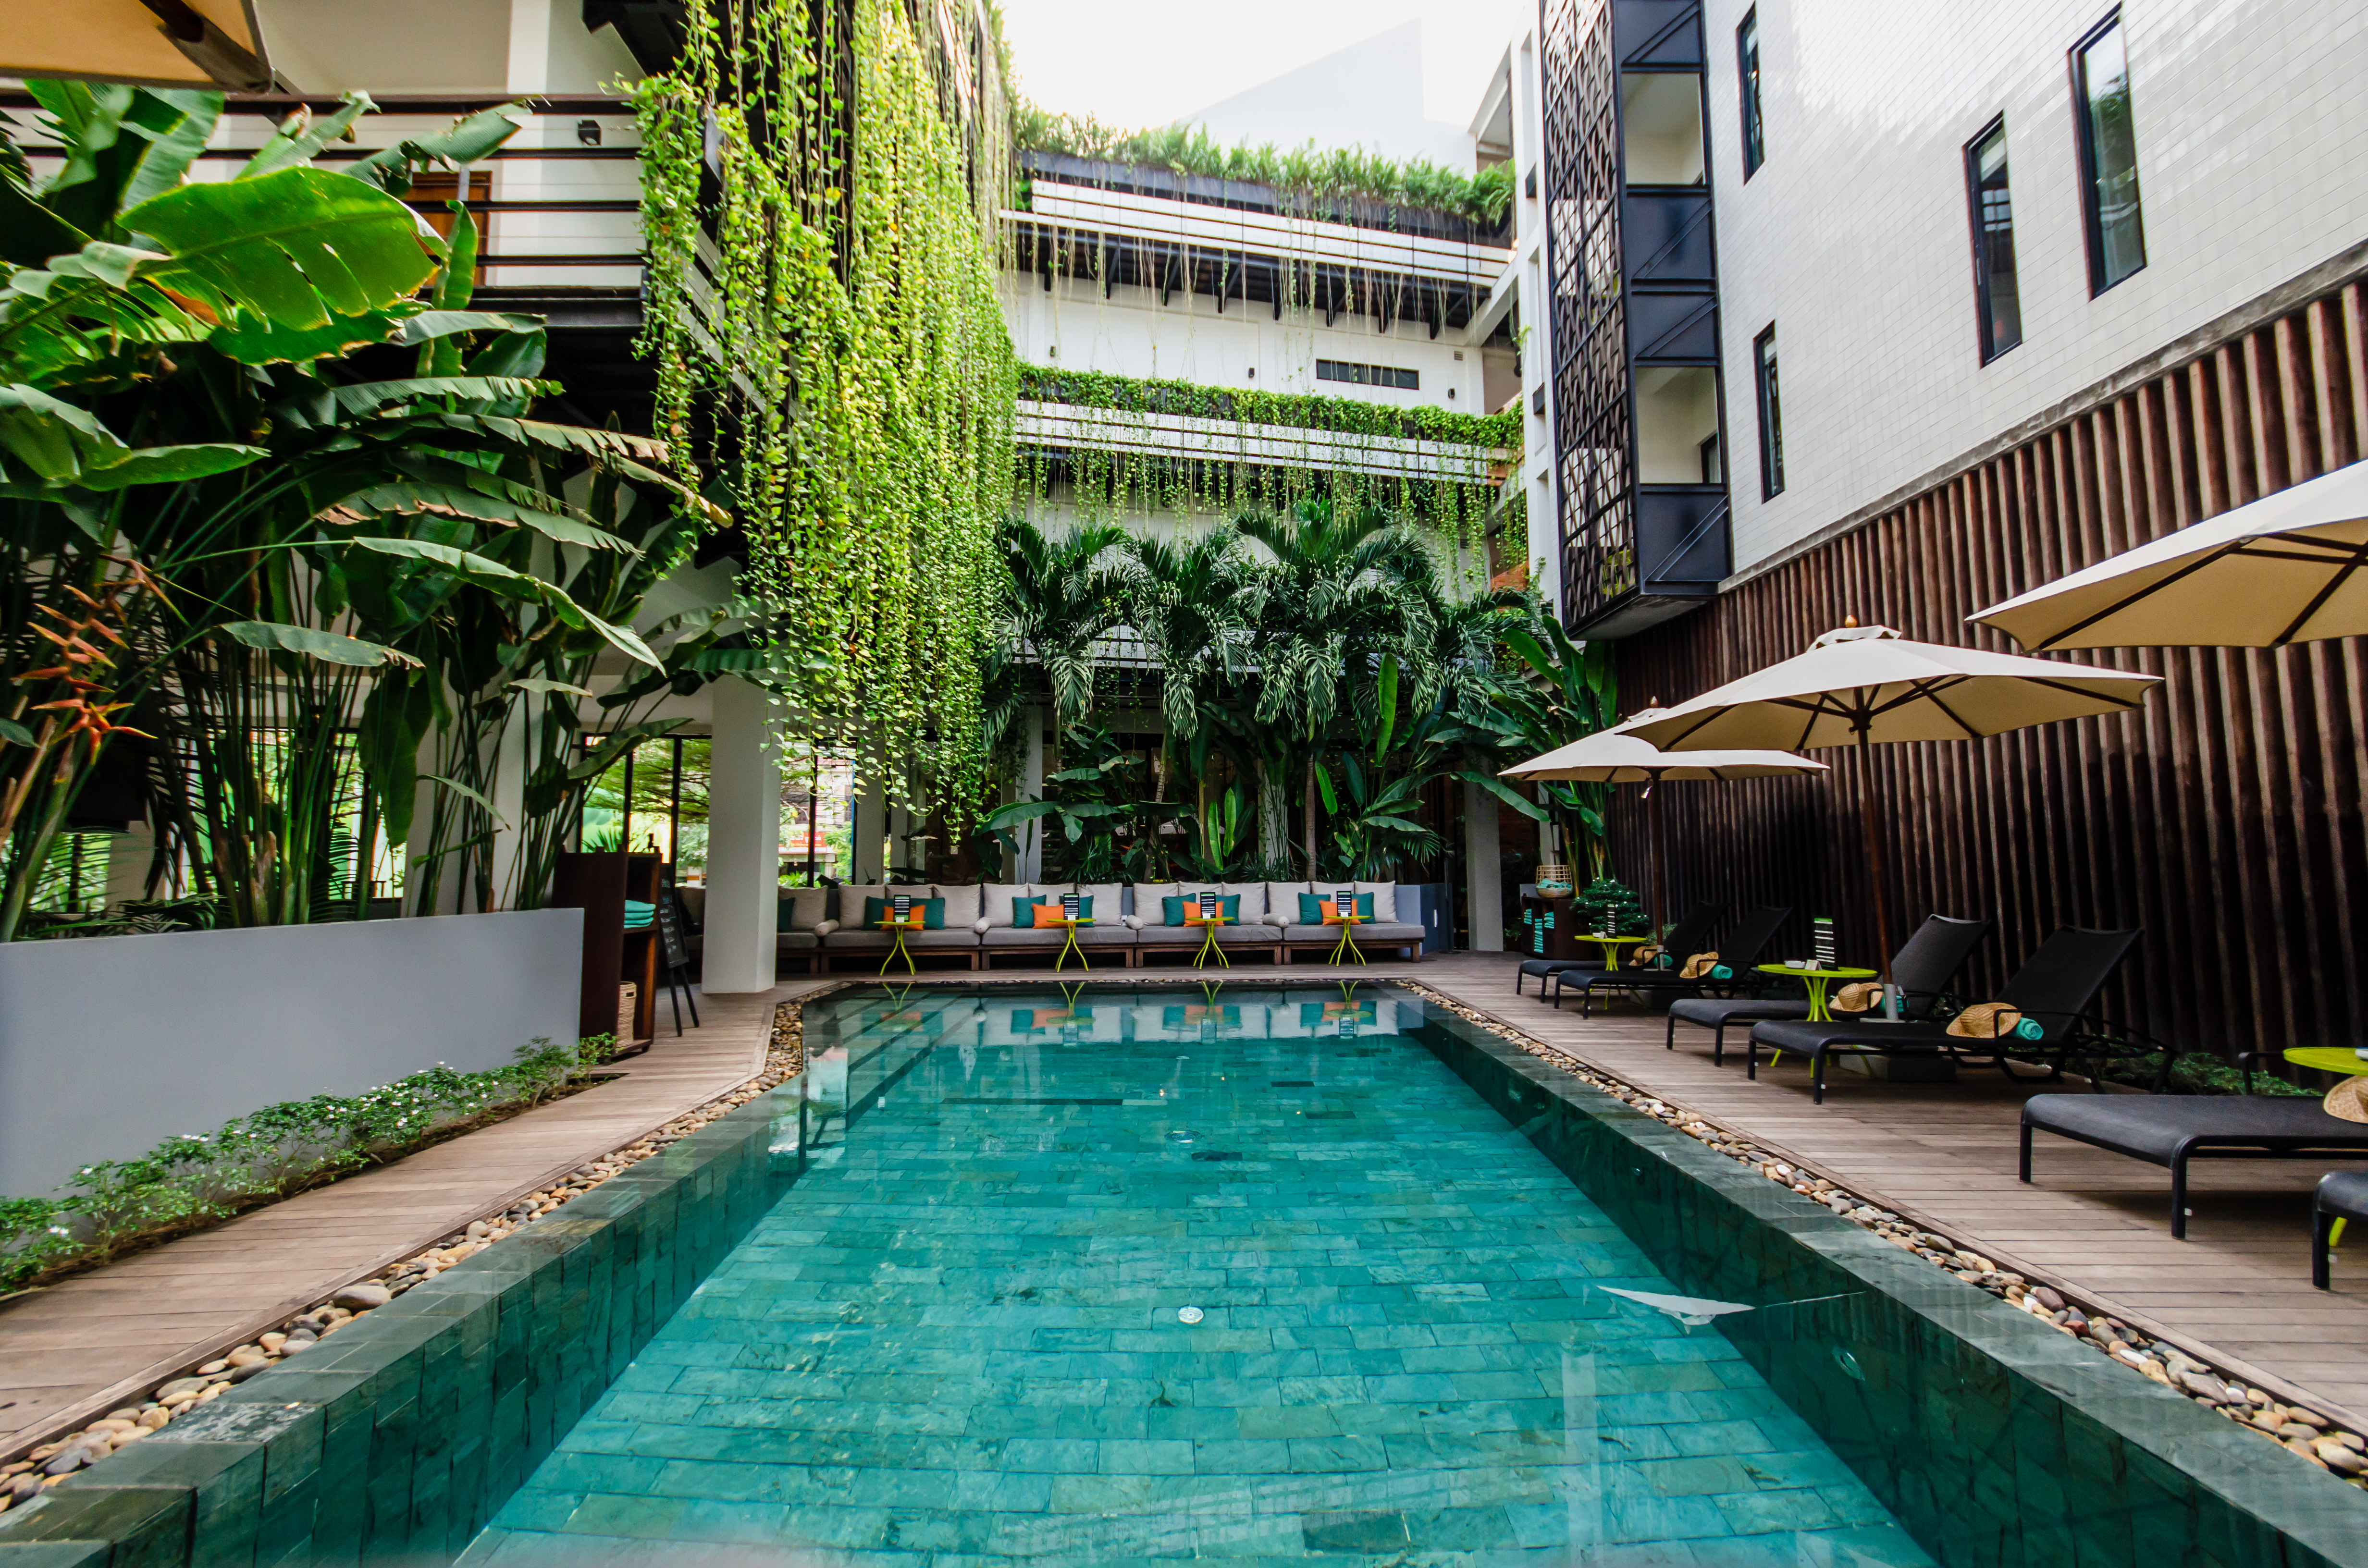 Travel public relations client The Aviary Hotel's Ground Level Pool - with vertical greenery, deck chairs and umbrellas